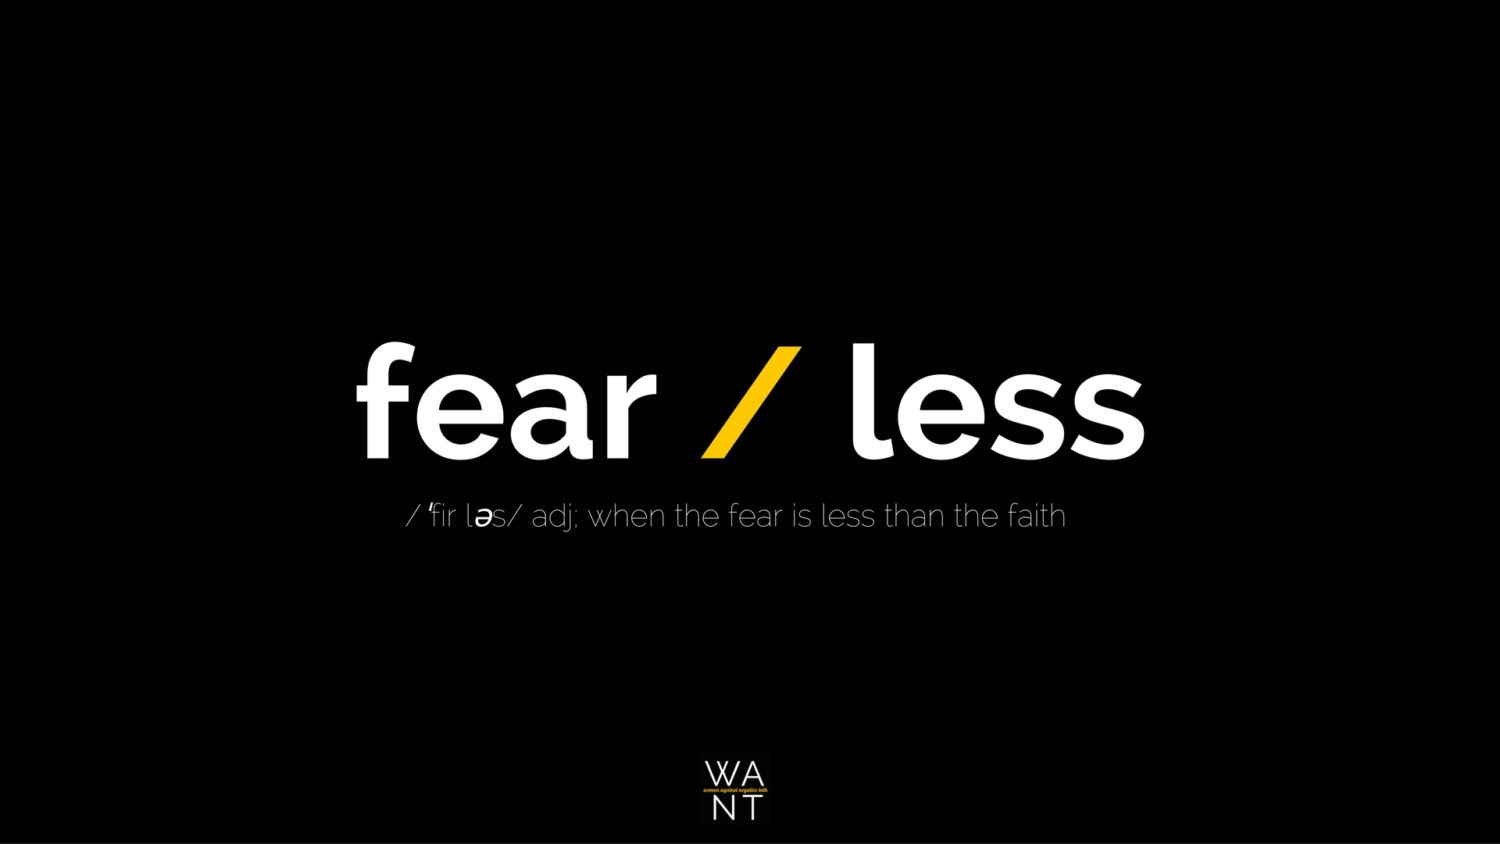 fear-less-desktopwallpaper